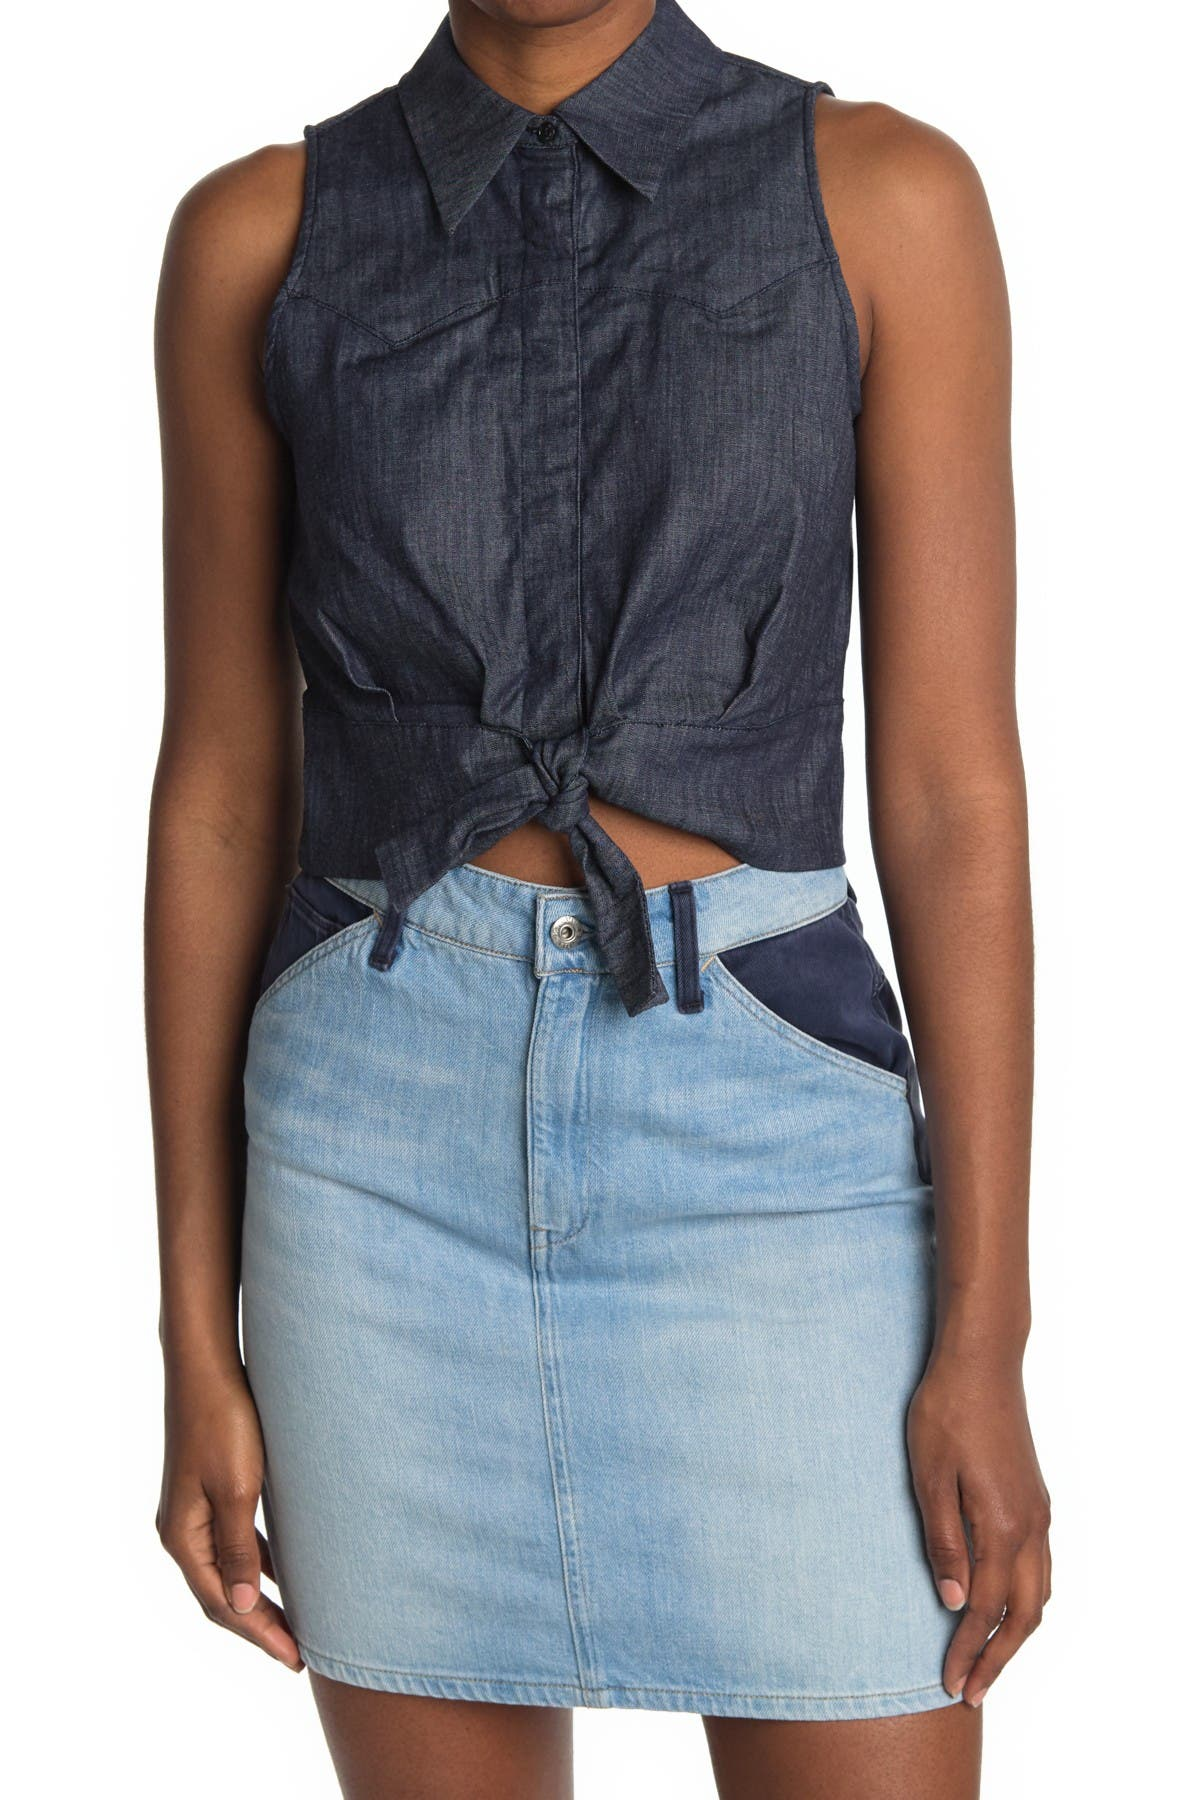 Image of G-STAR RAW Tacoma Front Tie Sleeveless Top